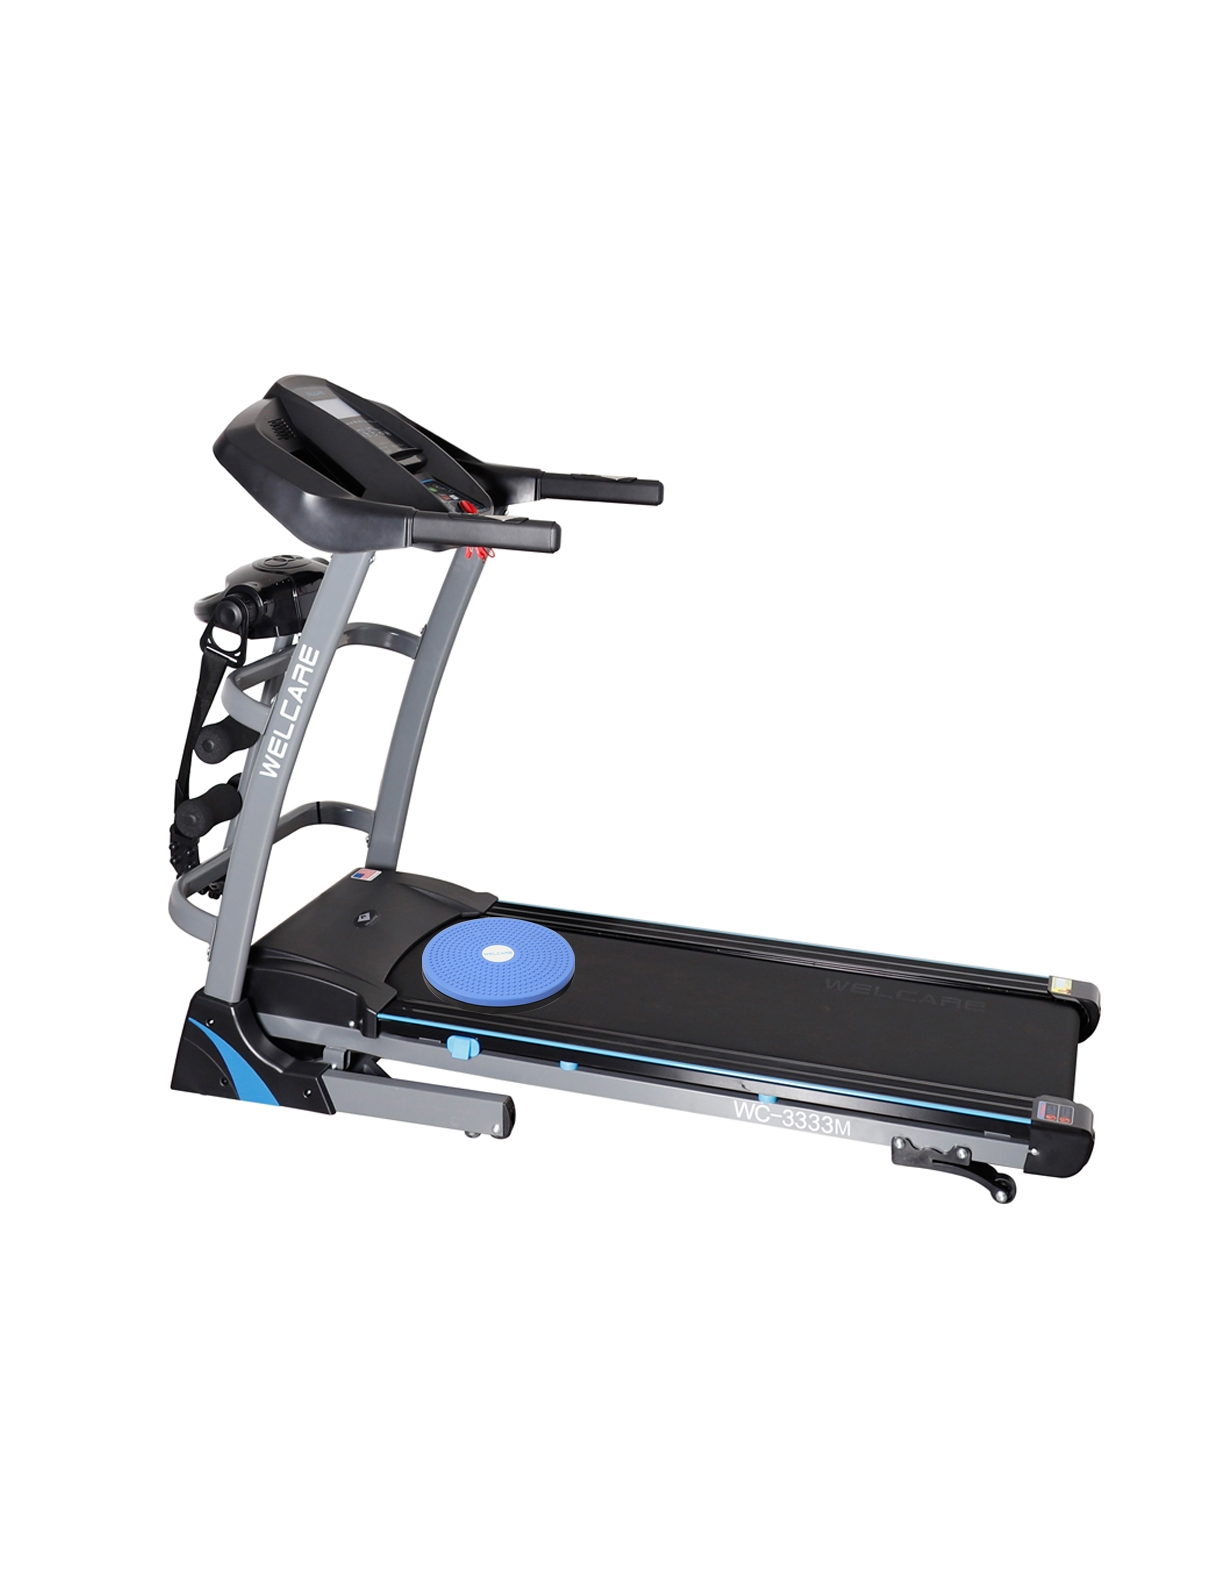 WC 3333M MOTORIZED TREADMILL